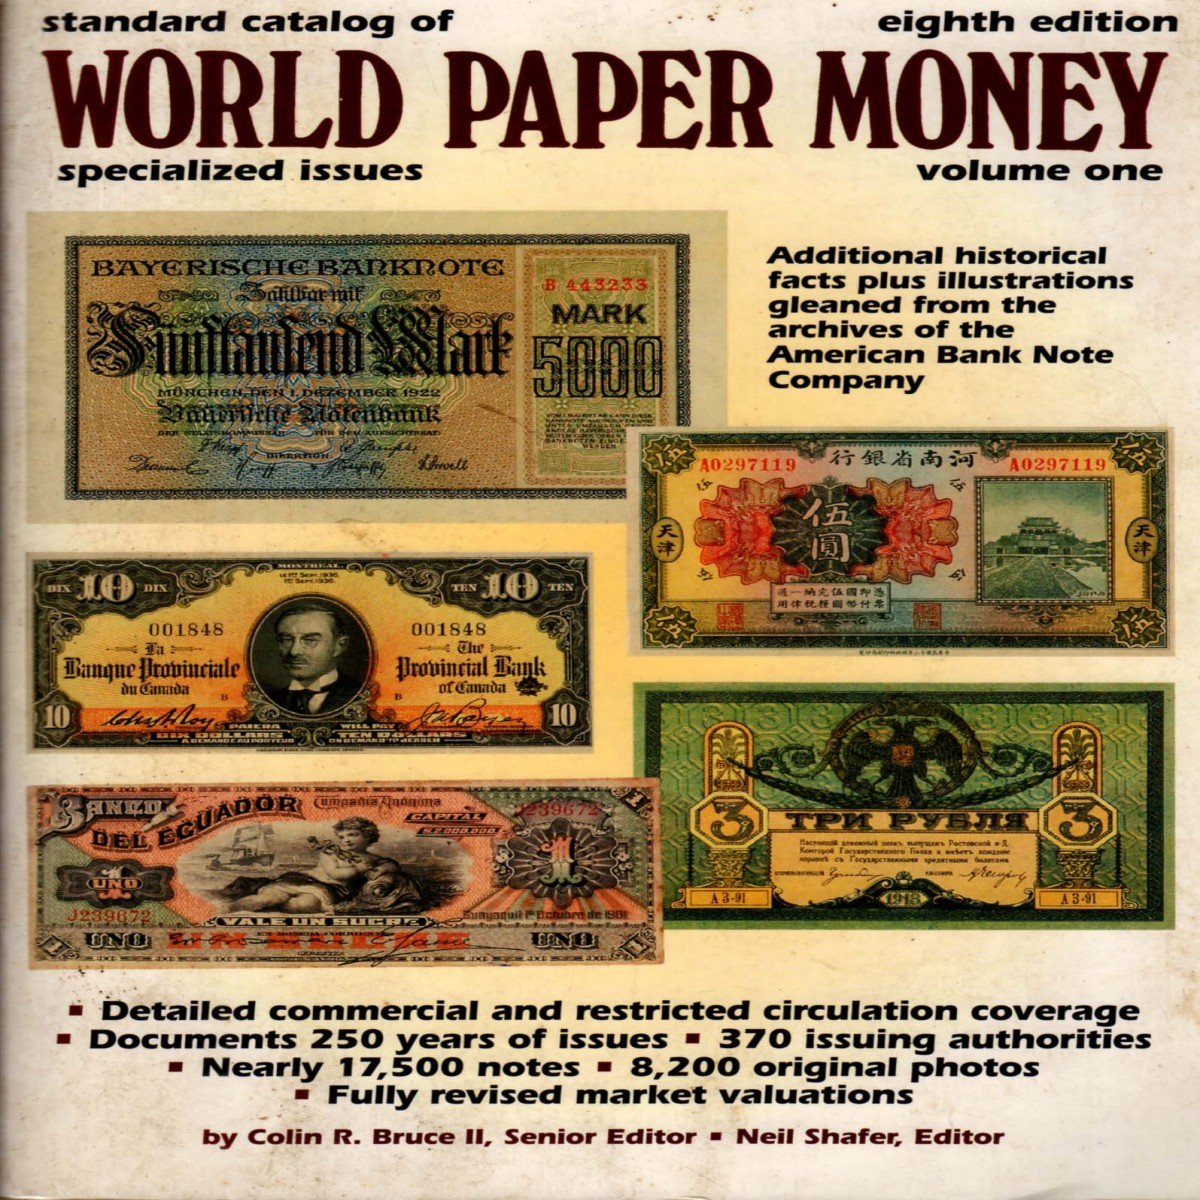 Standard Catalog of World Paper Money, Specialised Issues, Volume one, Eighth Edition